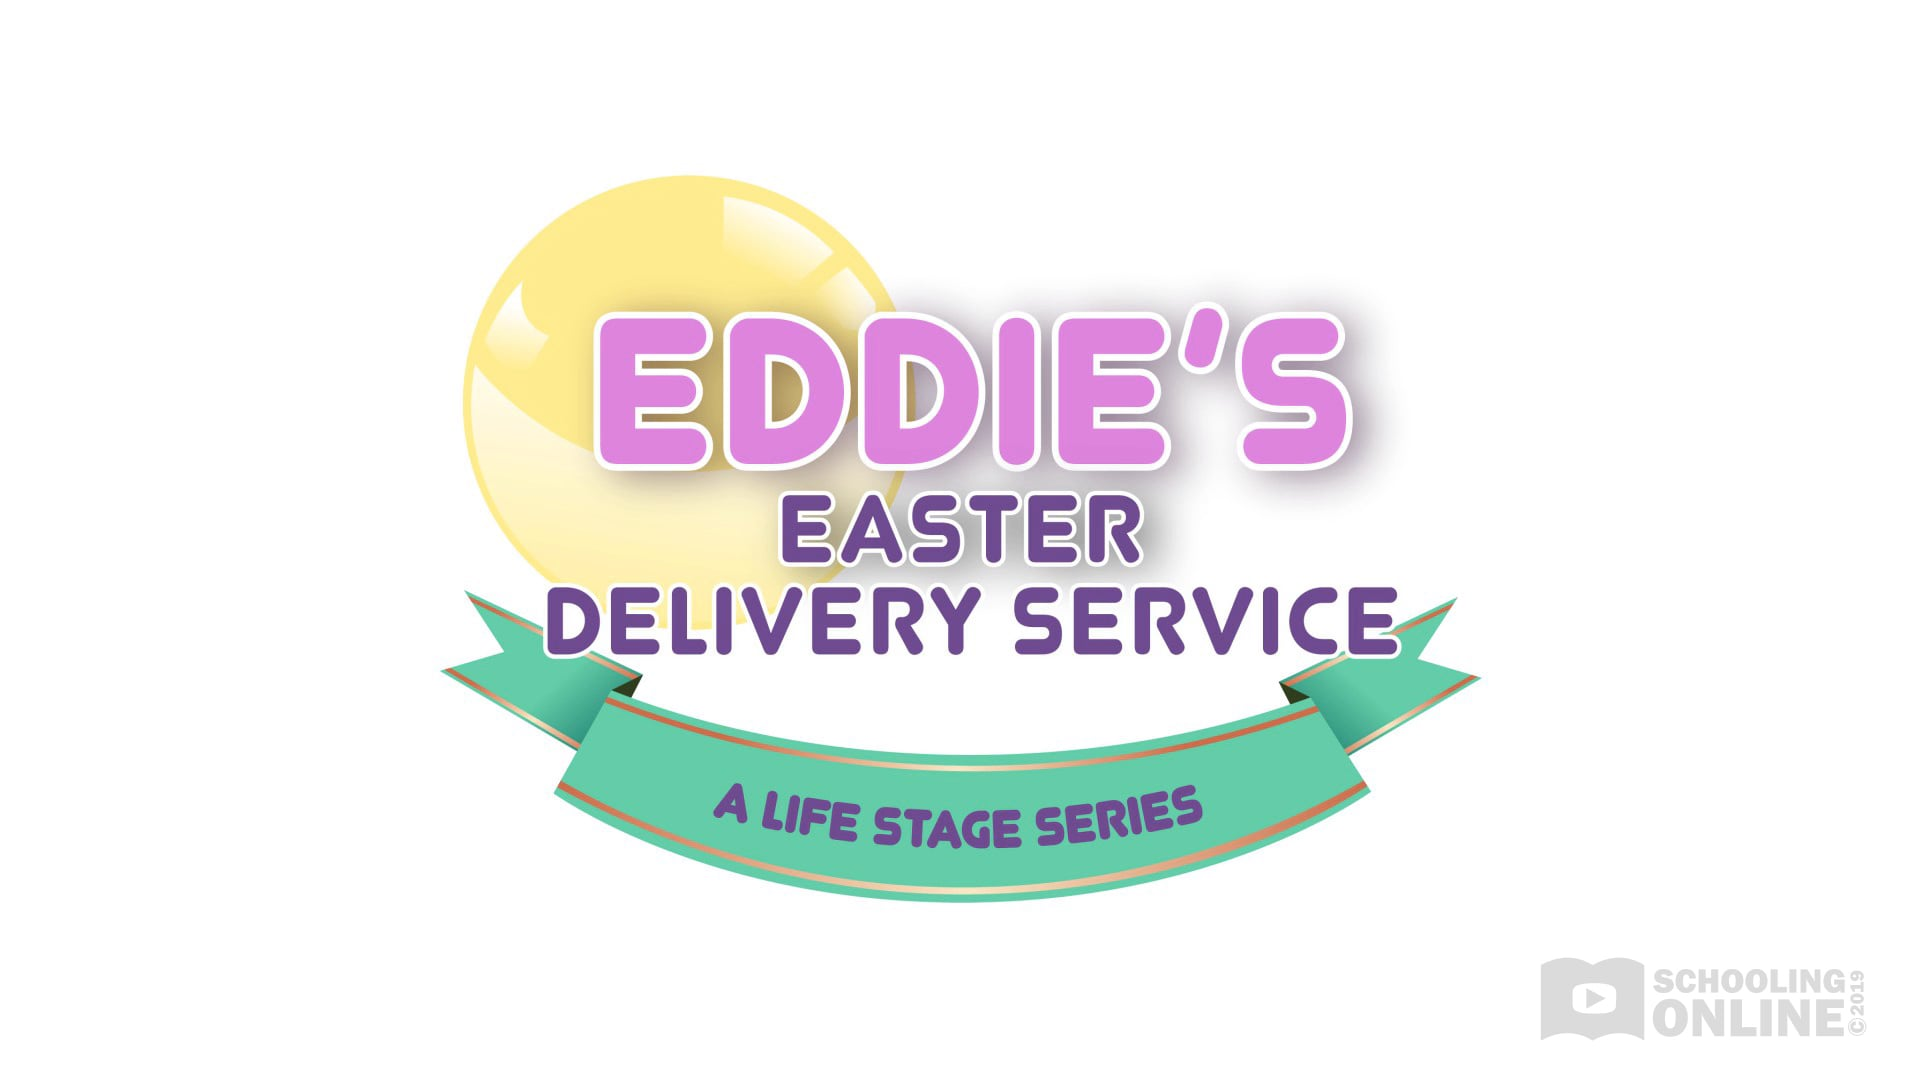 Eddie's Easter Delivery Service - The Life Stage Series